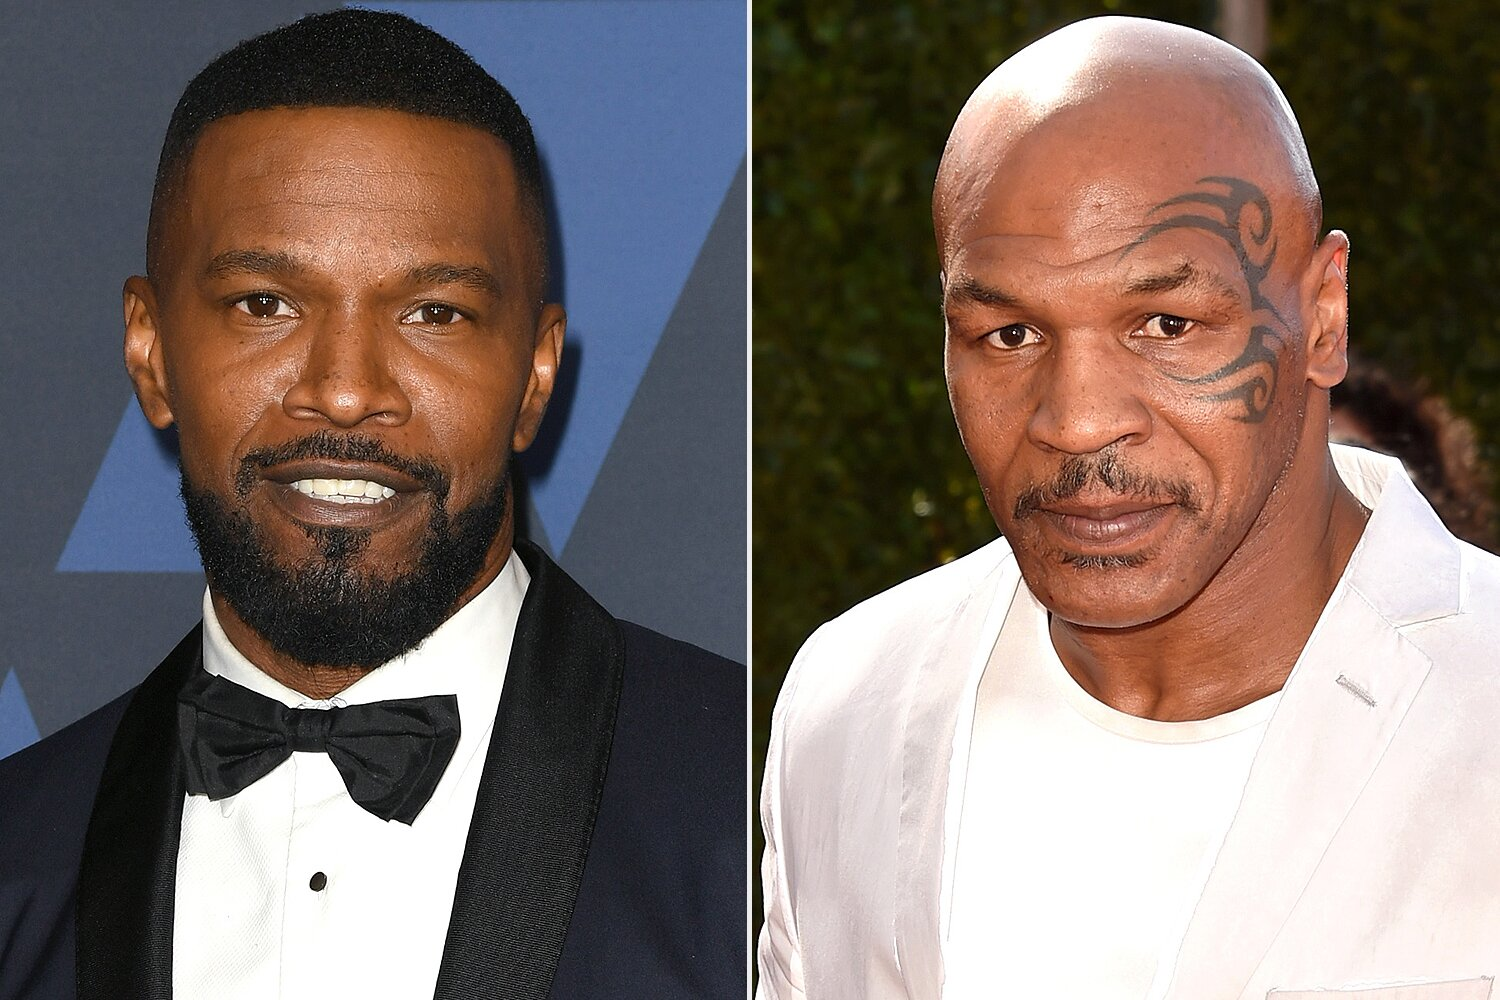 Jamie Foxx Transforms into Mike Tyson for Upcoming Biopic | PEOPLE.com